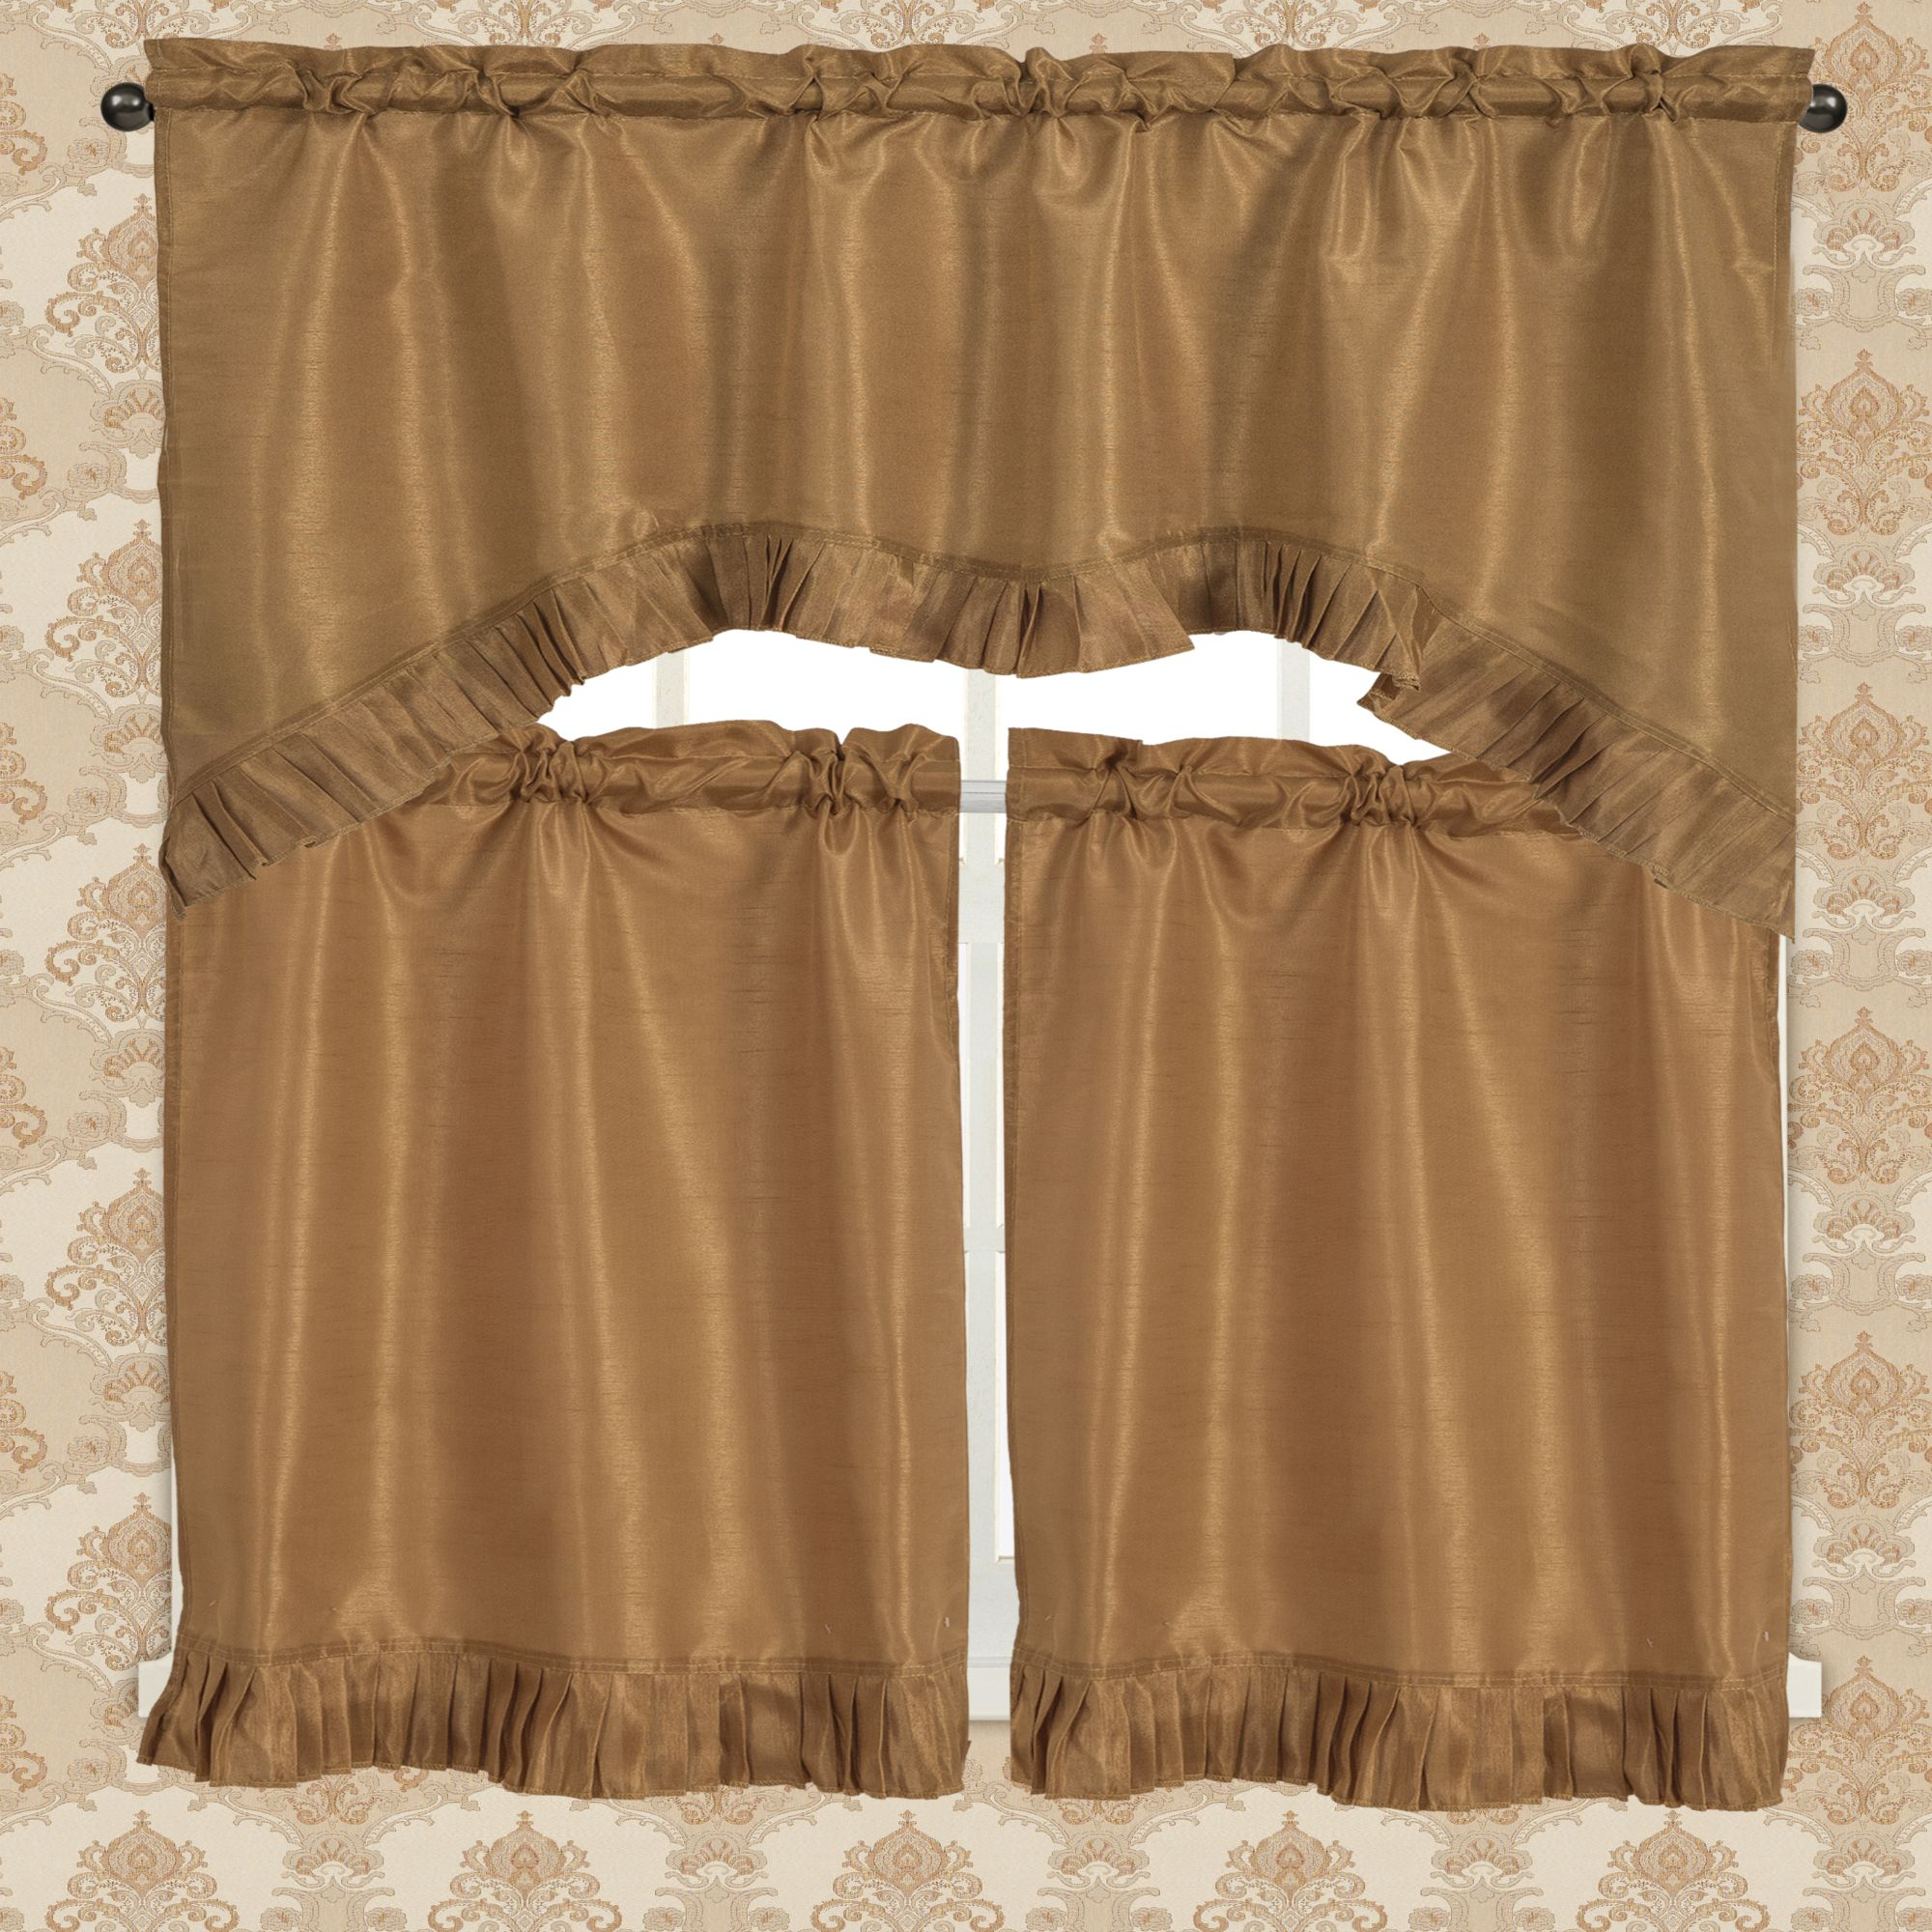 Bermuda Ruffle Kitchen Curtain Tier Set Throughout Bermuda Ruffle Kitchen Curtain Tier Sets (View 4 of 20)